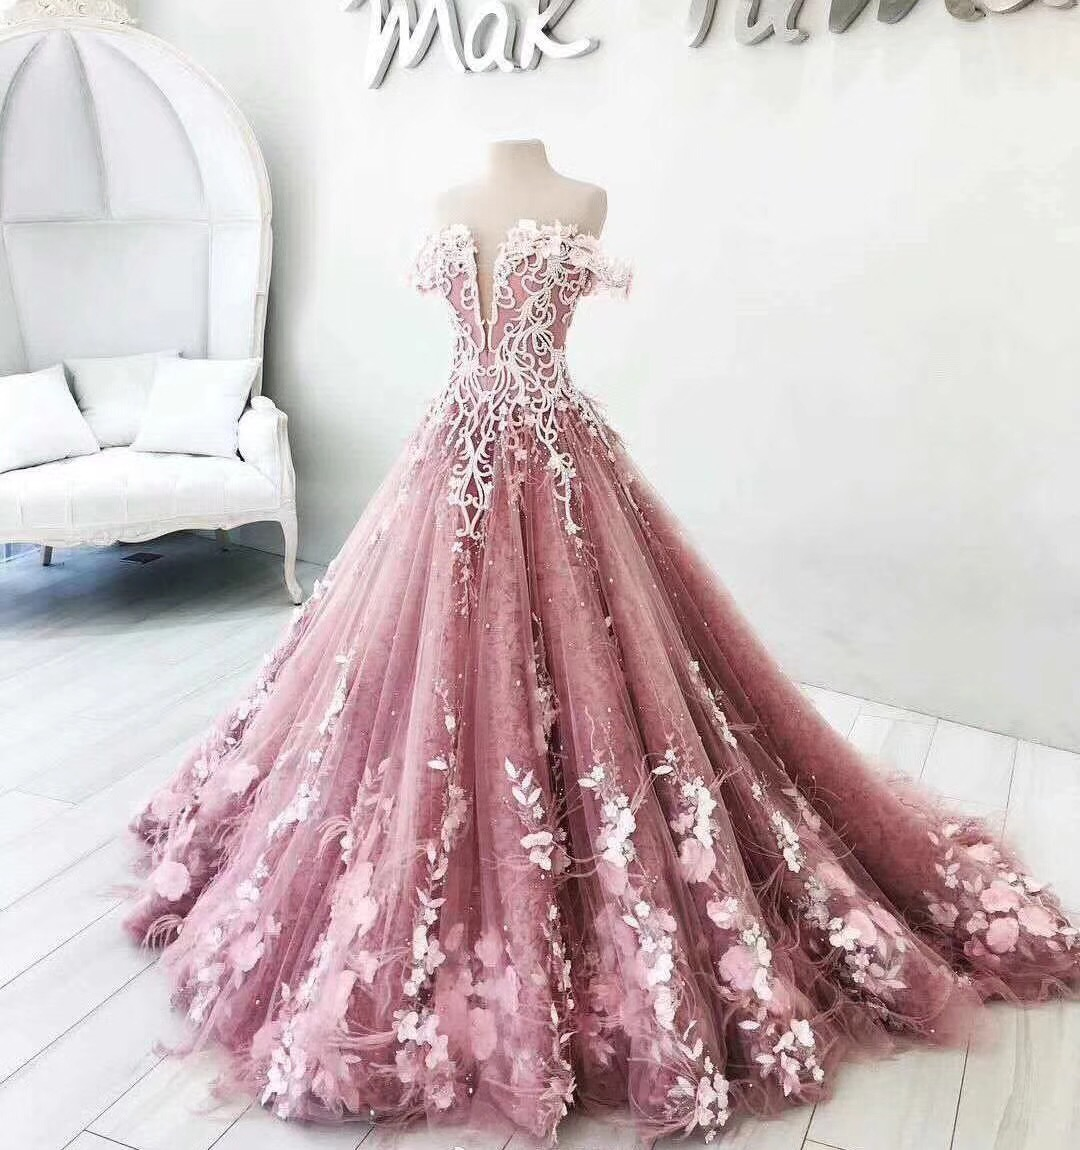 Ball Gown Prom Dresses, Off The Shoulder Prom Dresses, Hand Made ...